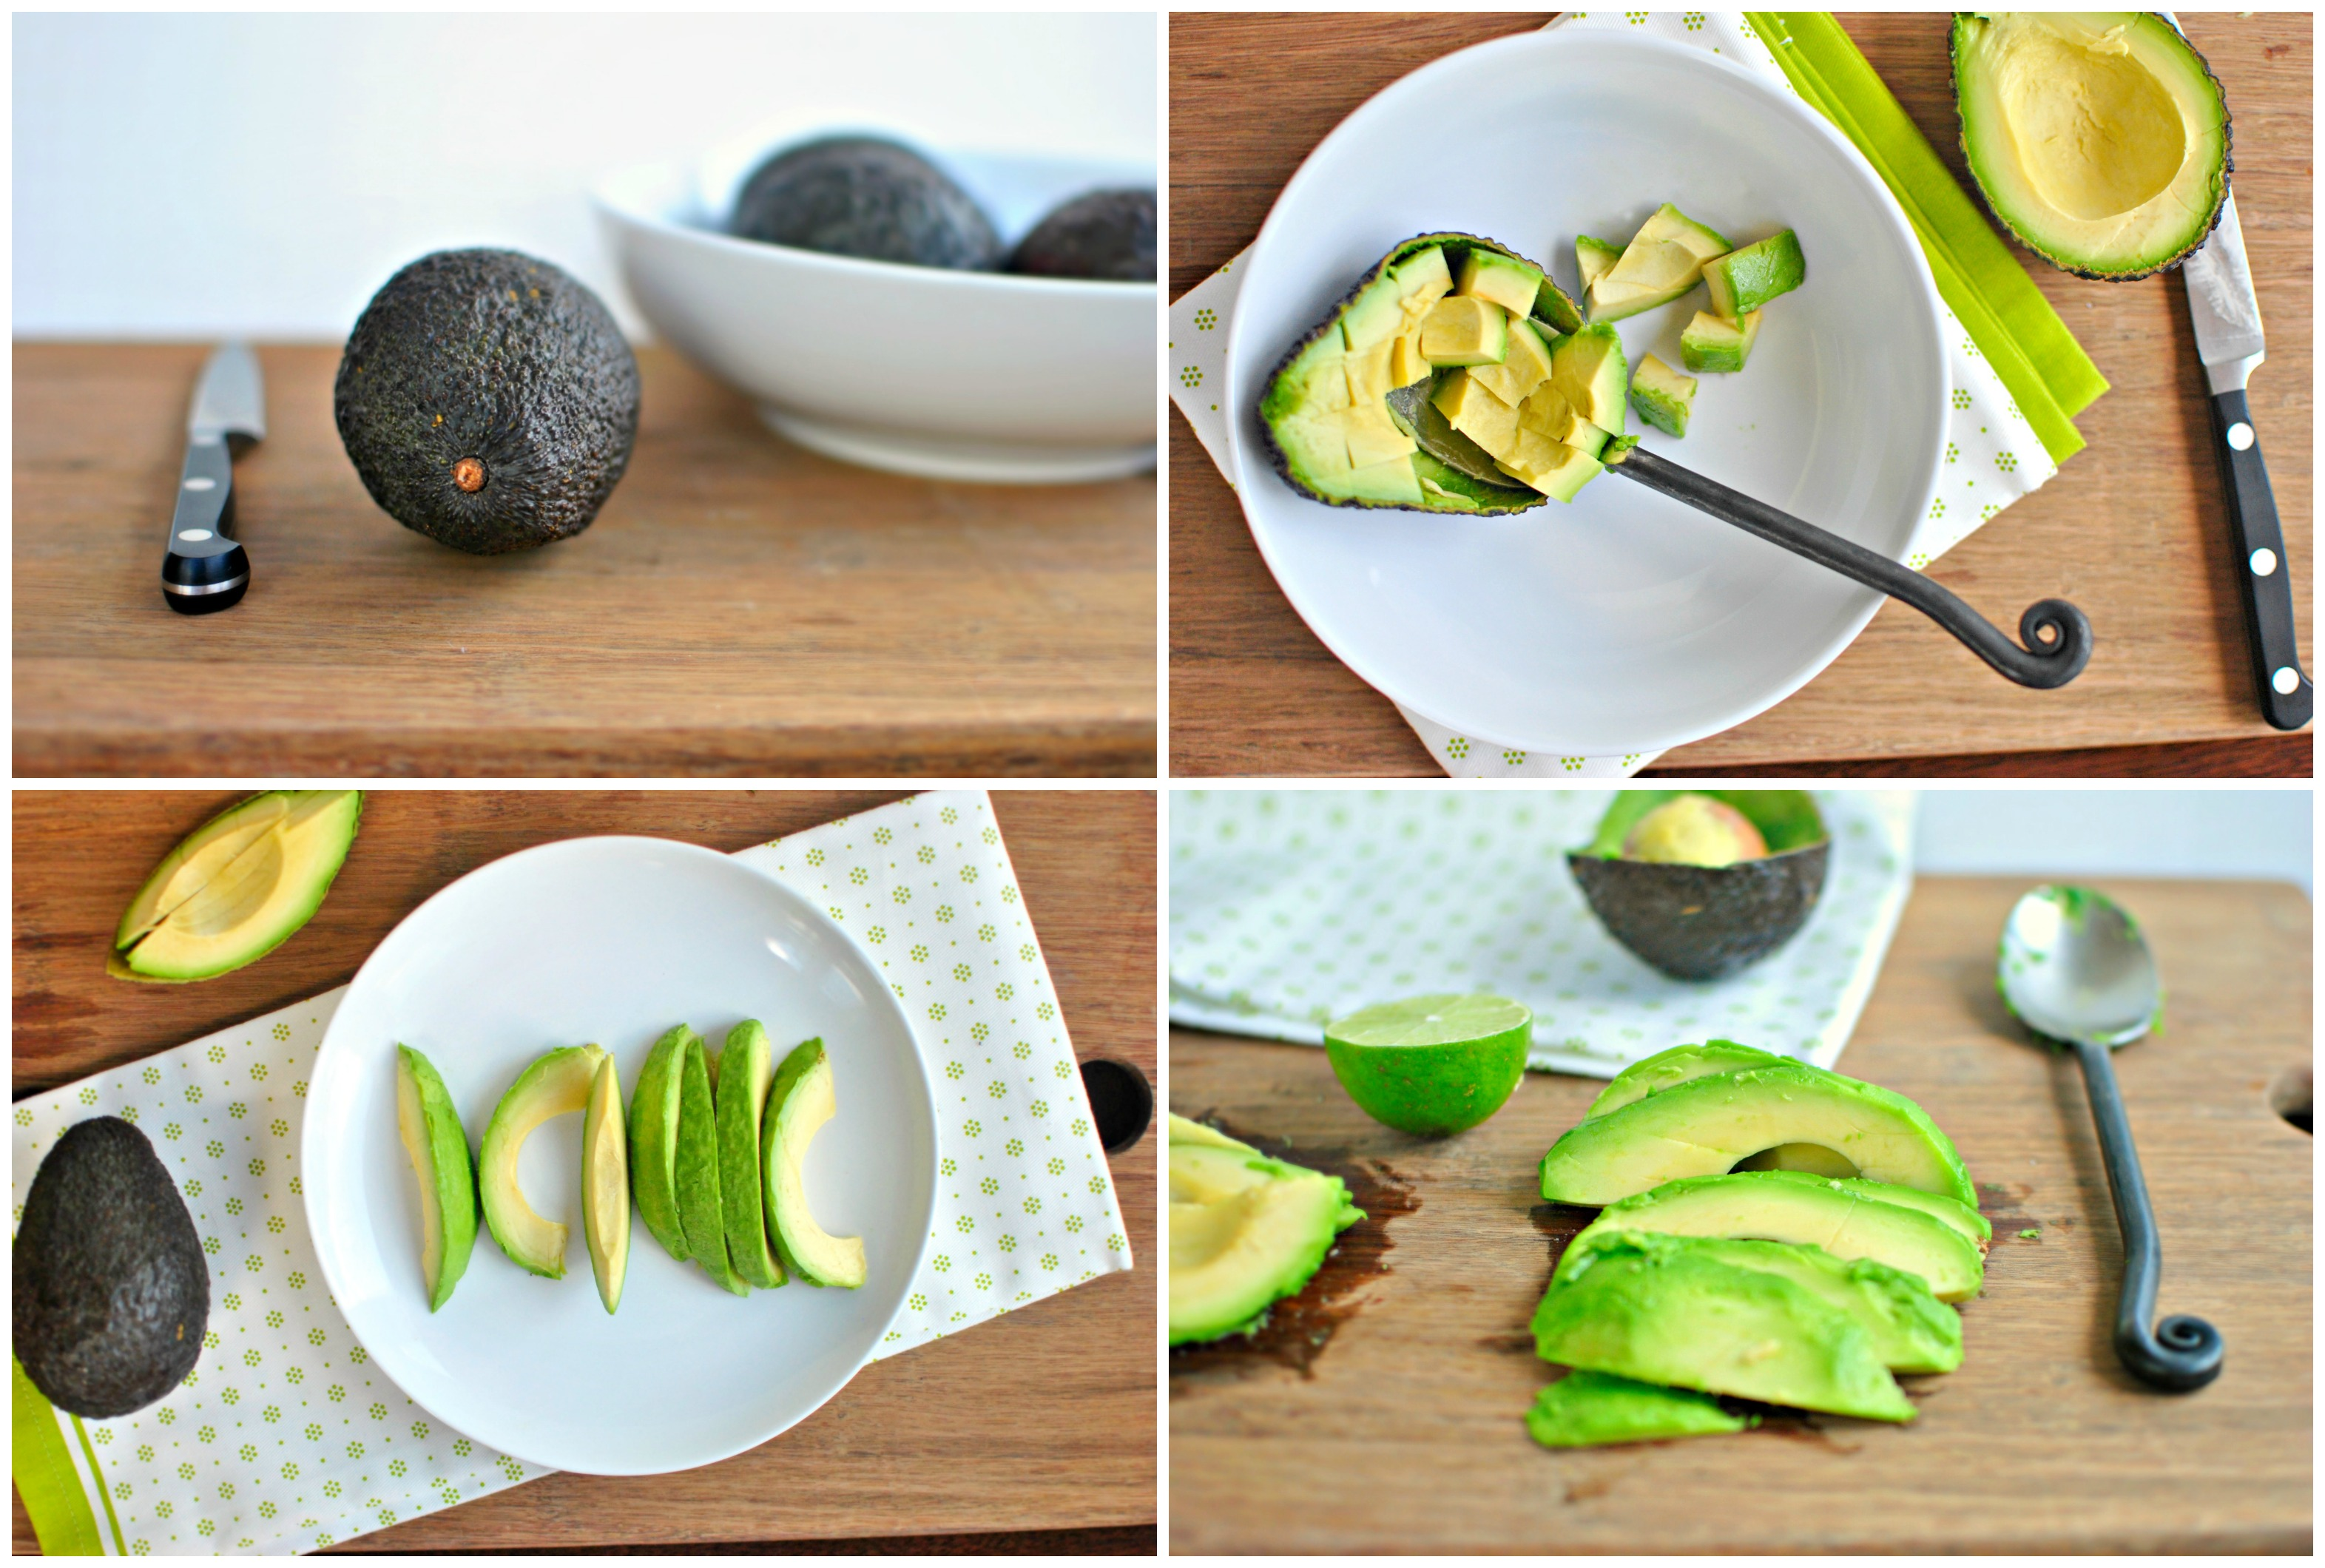 picture How to Cut an Avocado